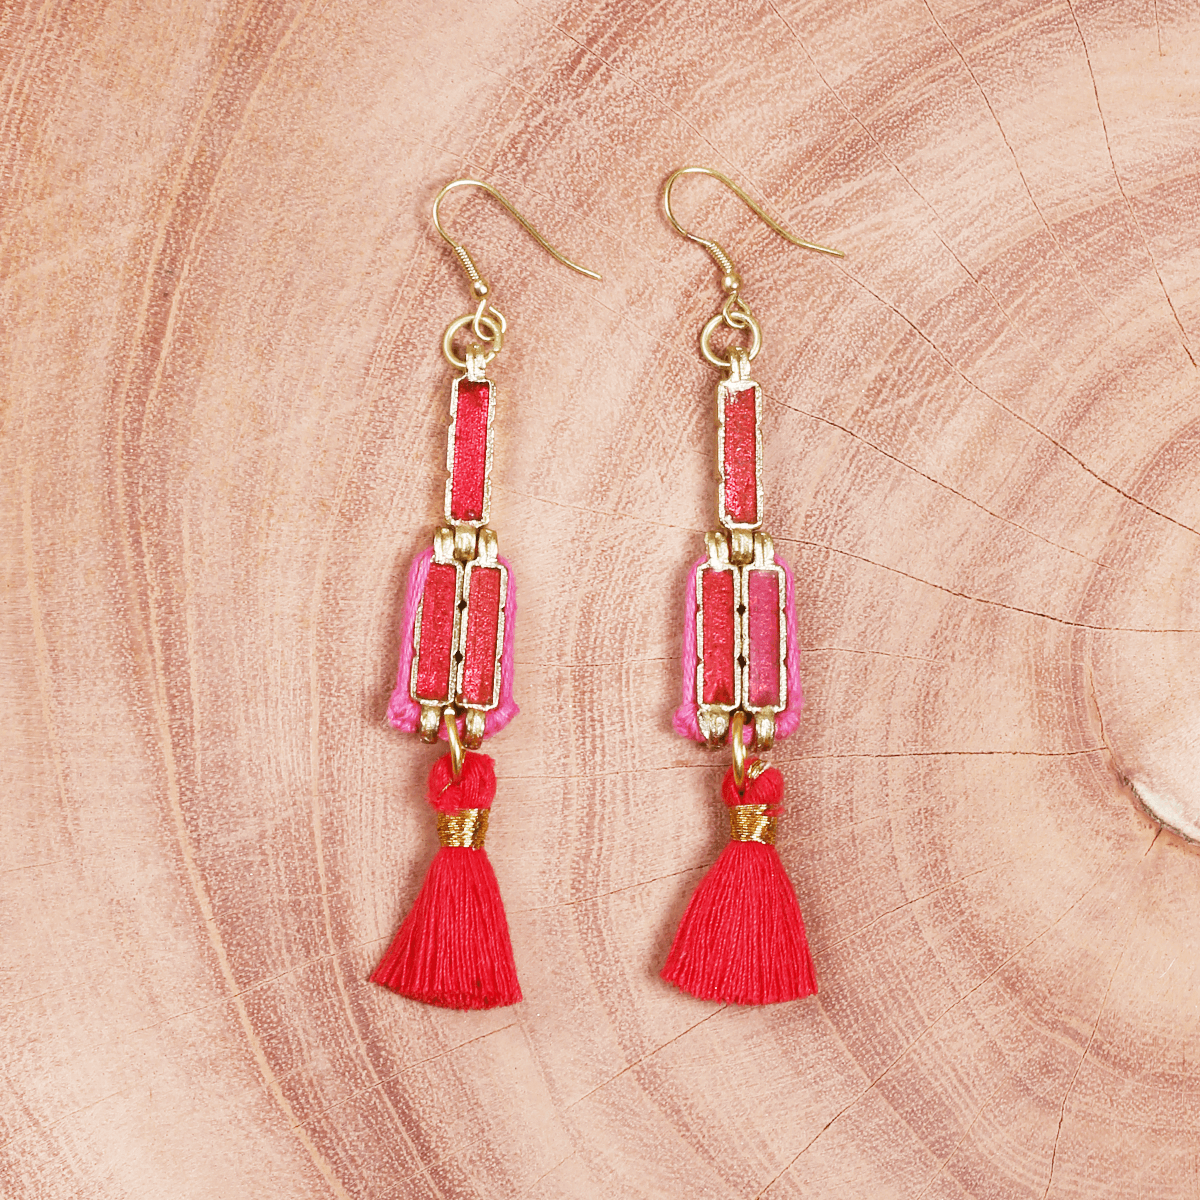 Bohemian Fashion Tassel Metal Earrings  - Red